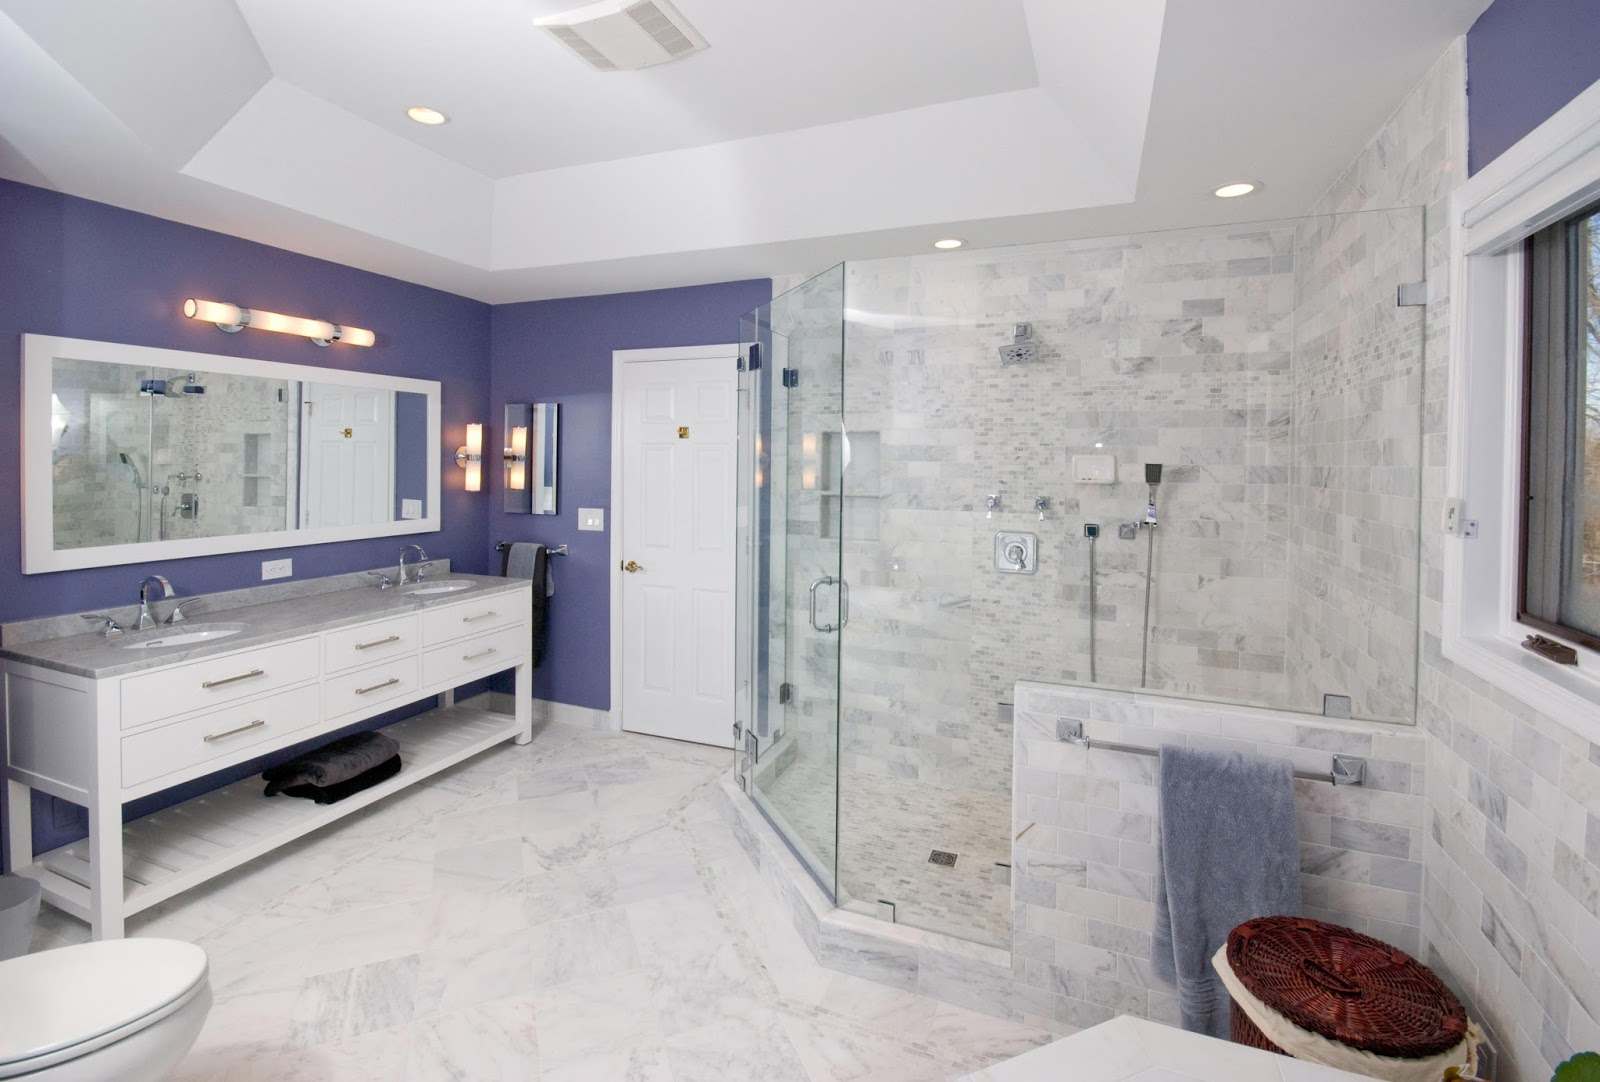 affordable bathroom remodeling tips in fairfax va - Bathroom Remodeling Fairfax Va